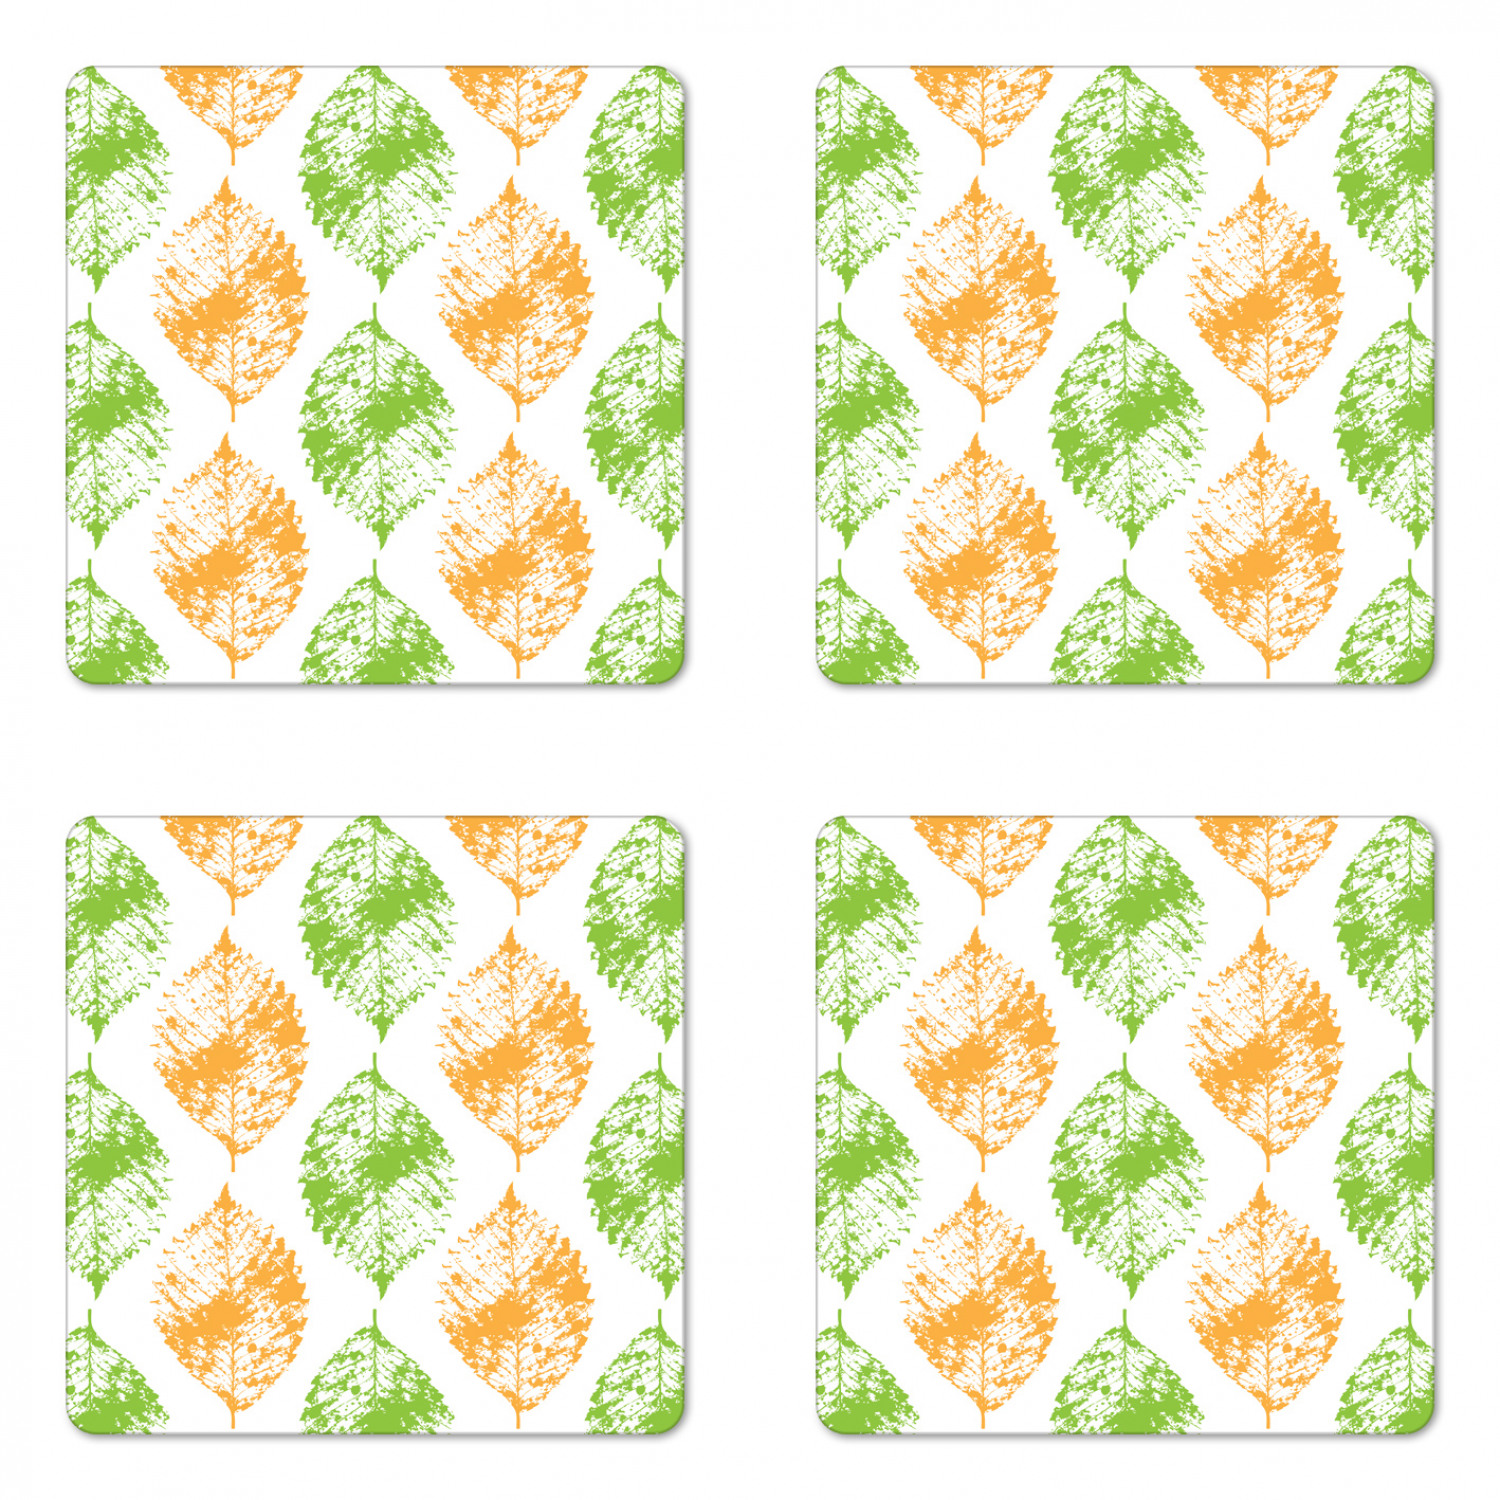 Leaves Coaster Set Of 4 Illustration Print Of Leaf Intricate Motifs Minimalist Design Grunge Art Square Hardboard Gloss Coasters Standard Size White And Lime Green By Ambesonne Walmart Com Walmart Com